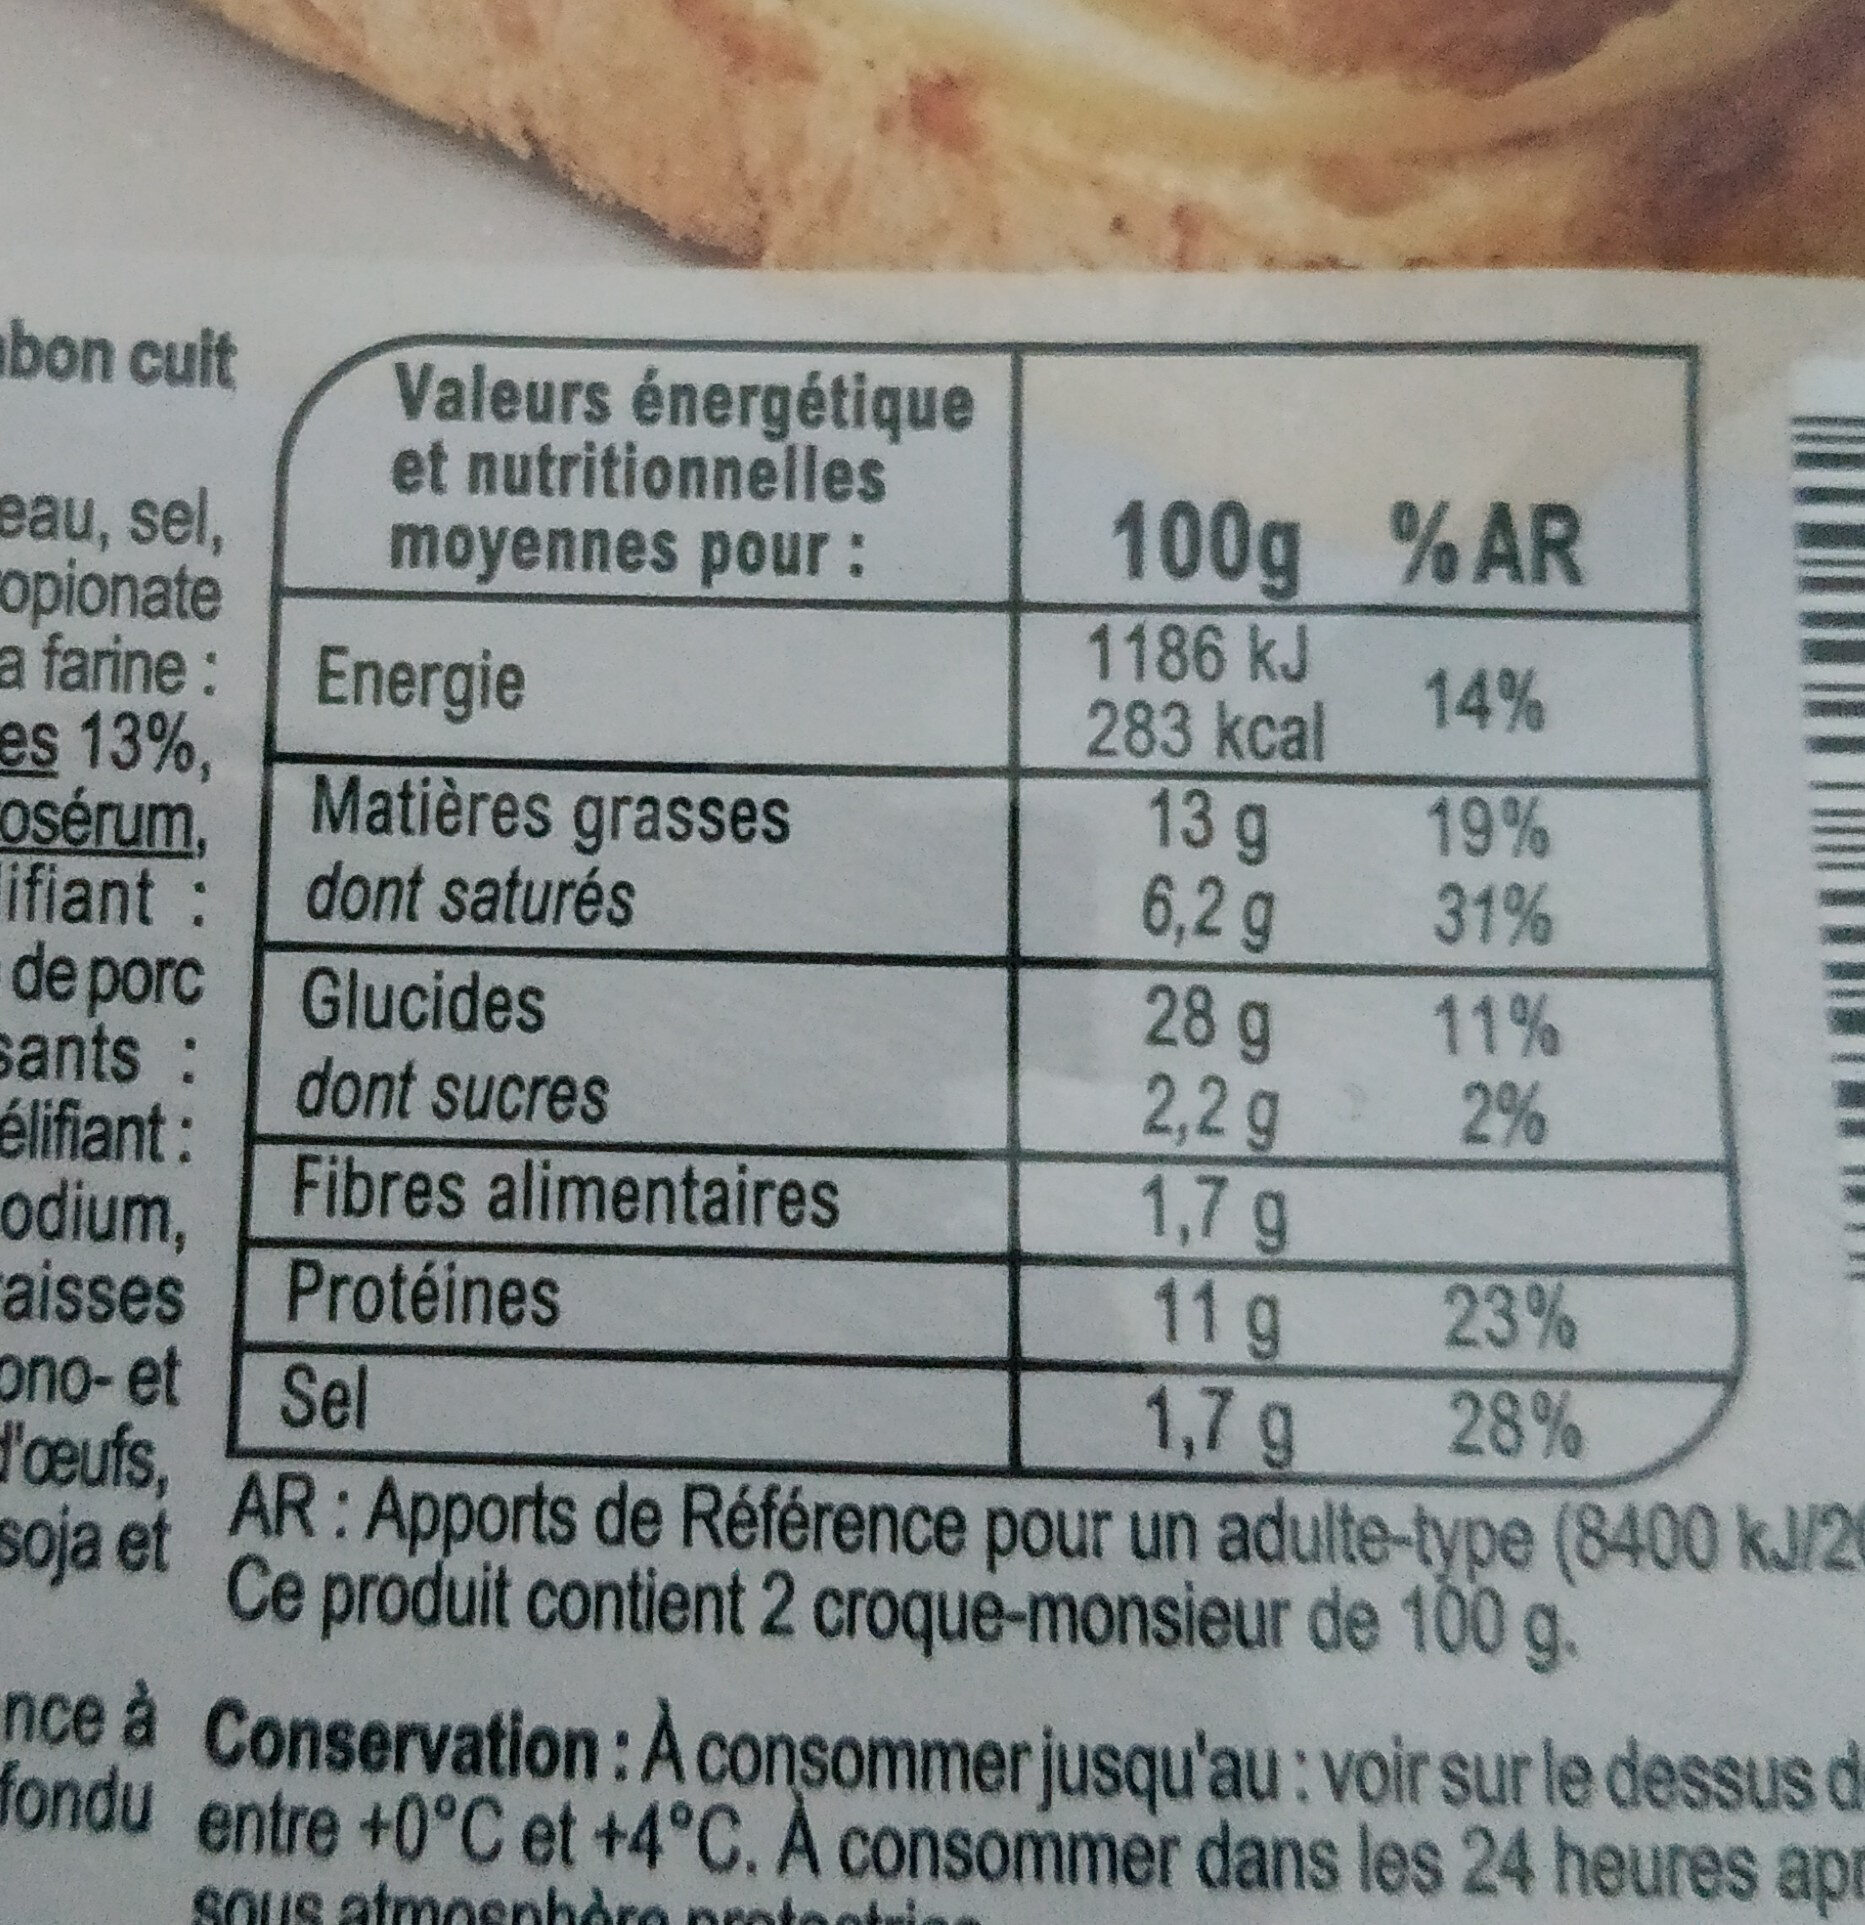 2 croque a poeler fromage jambon - Informations nutritionnelles - fr